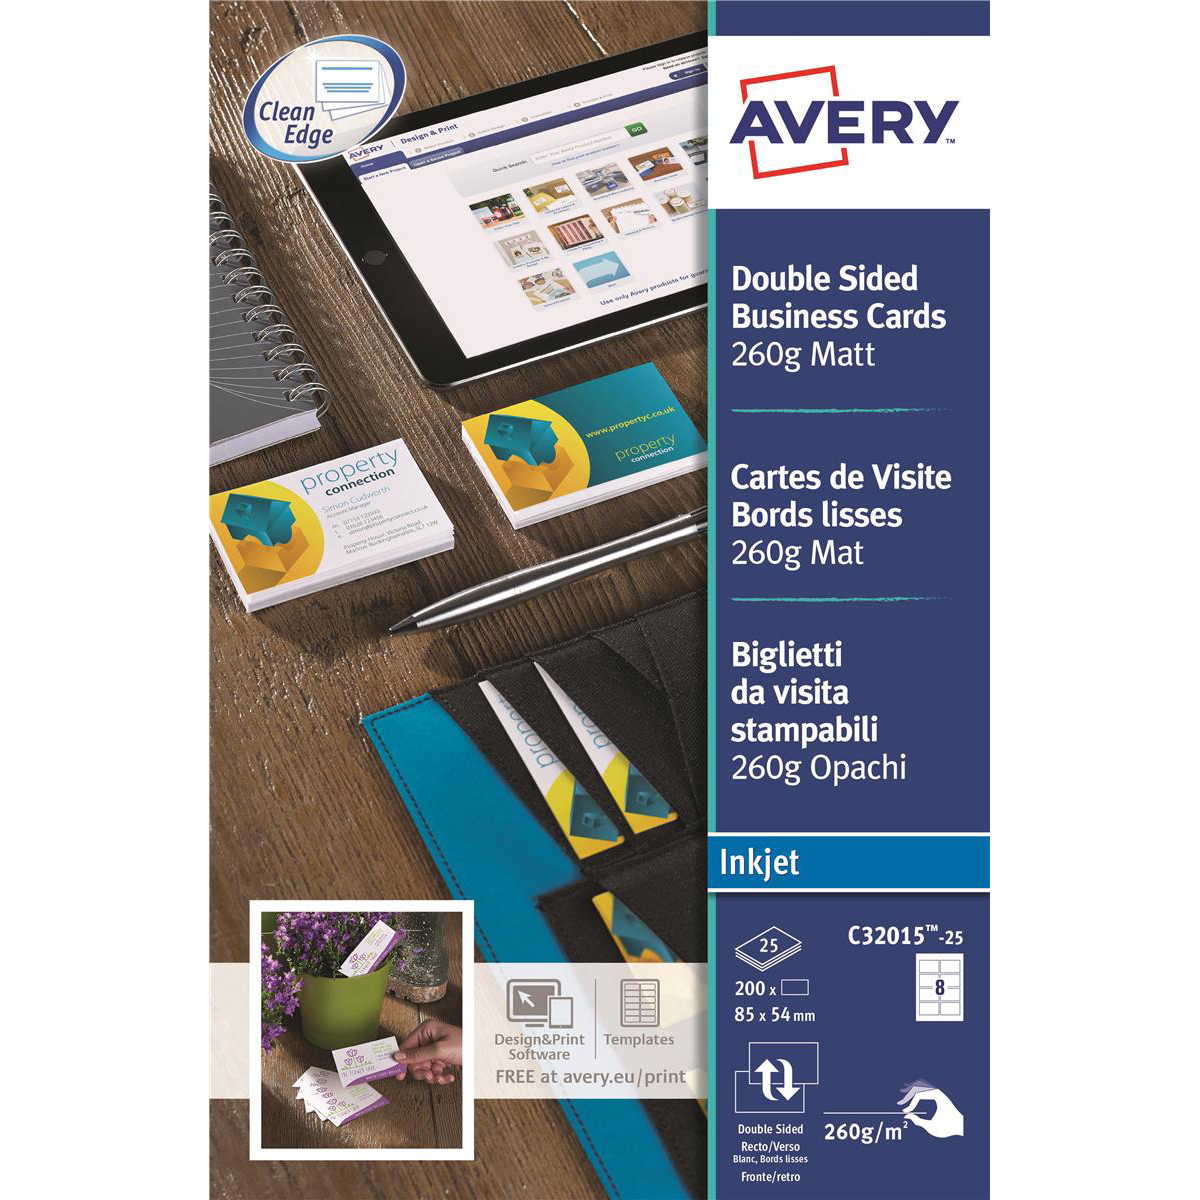 Business cards Avery Quick and Clean Business Cards Inkjet 260gsm 8 per Sheet Matt Coated Ref C32015-25 200 Cards